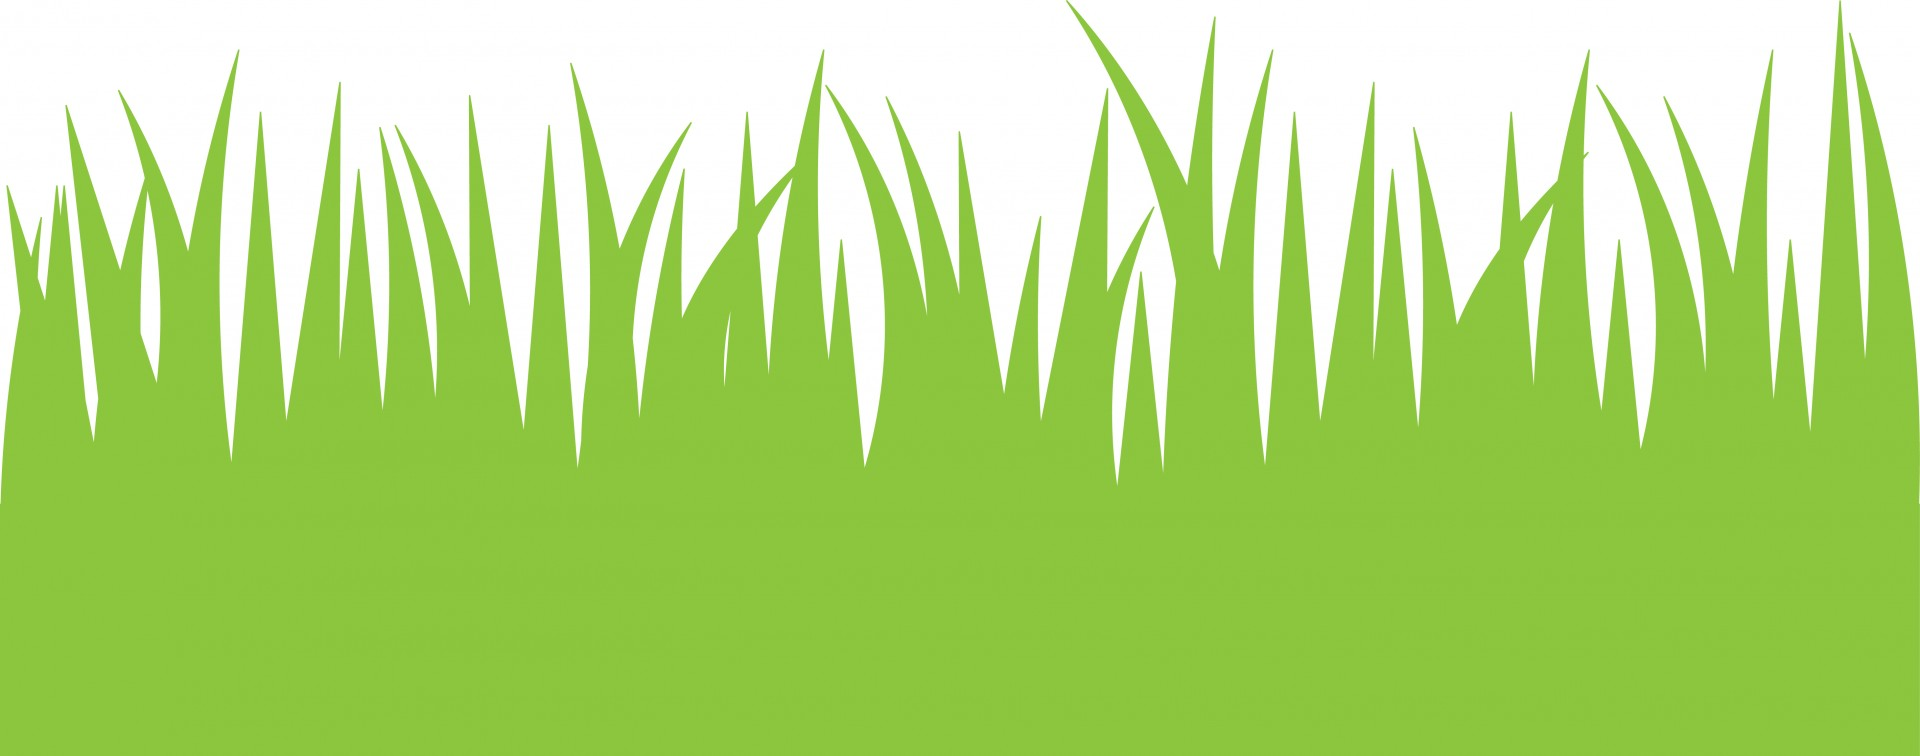 Grass clipart #20, Download drawings